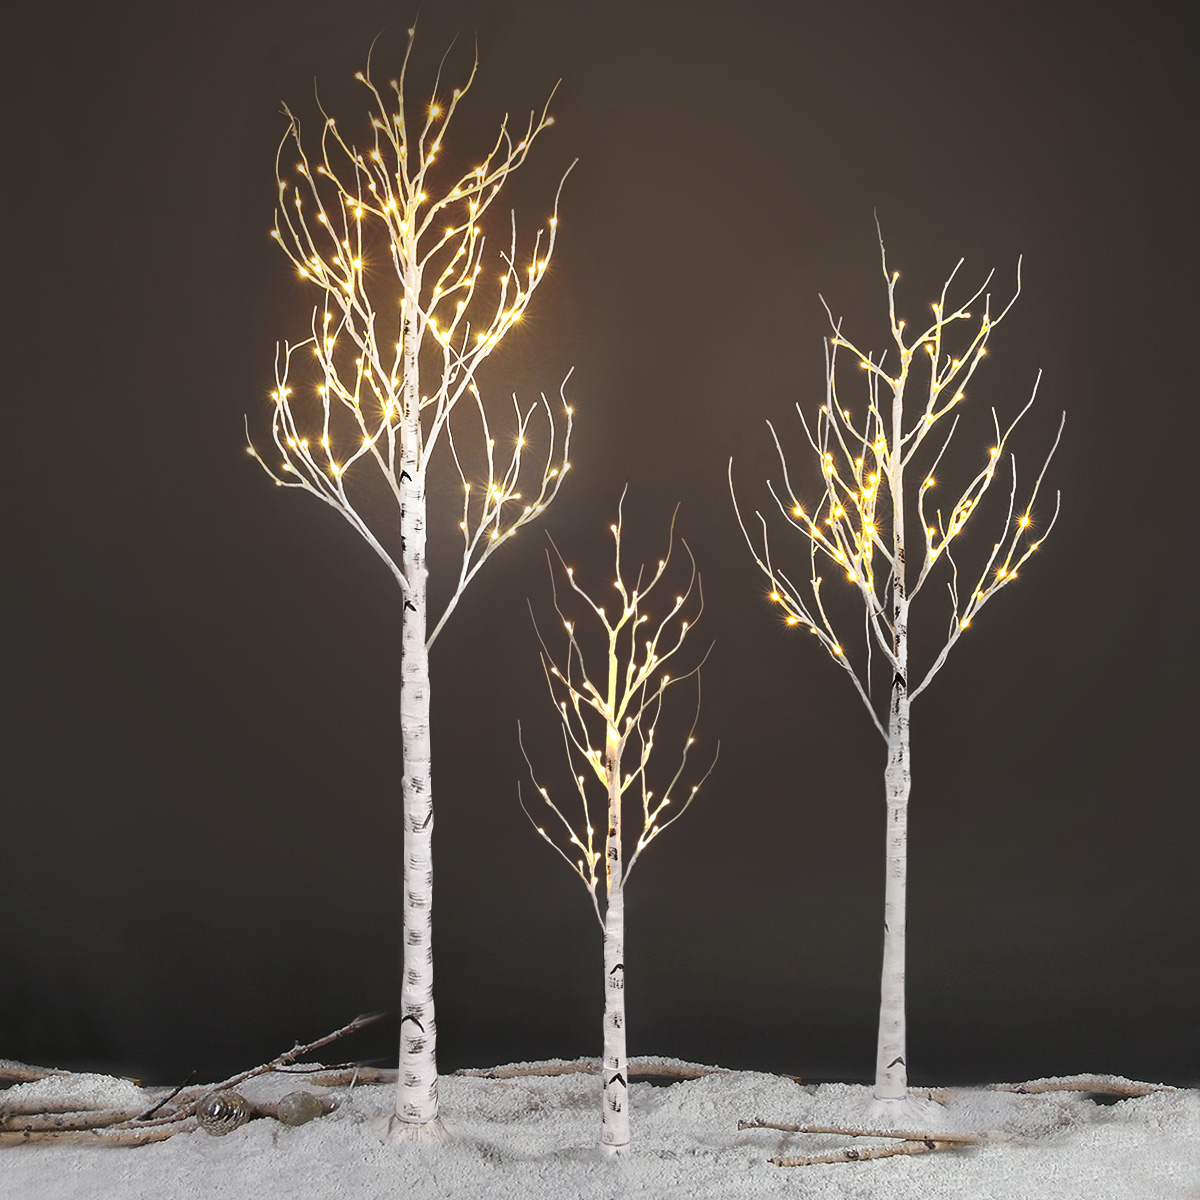 Details About 2 4 5ft Silver Birch Twig Tree Led Warm White Light Branches Xmas Party Us